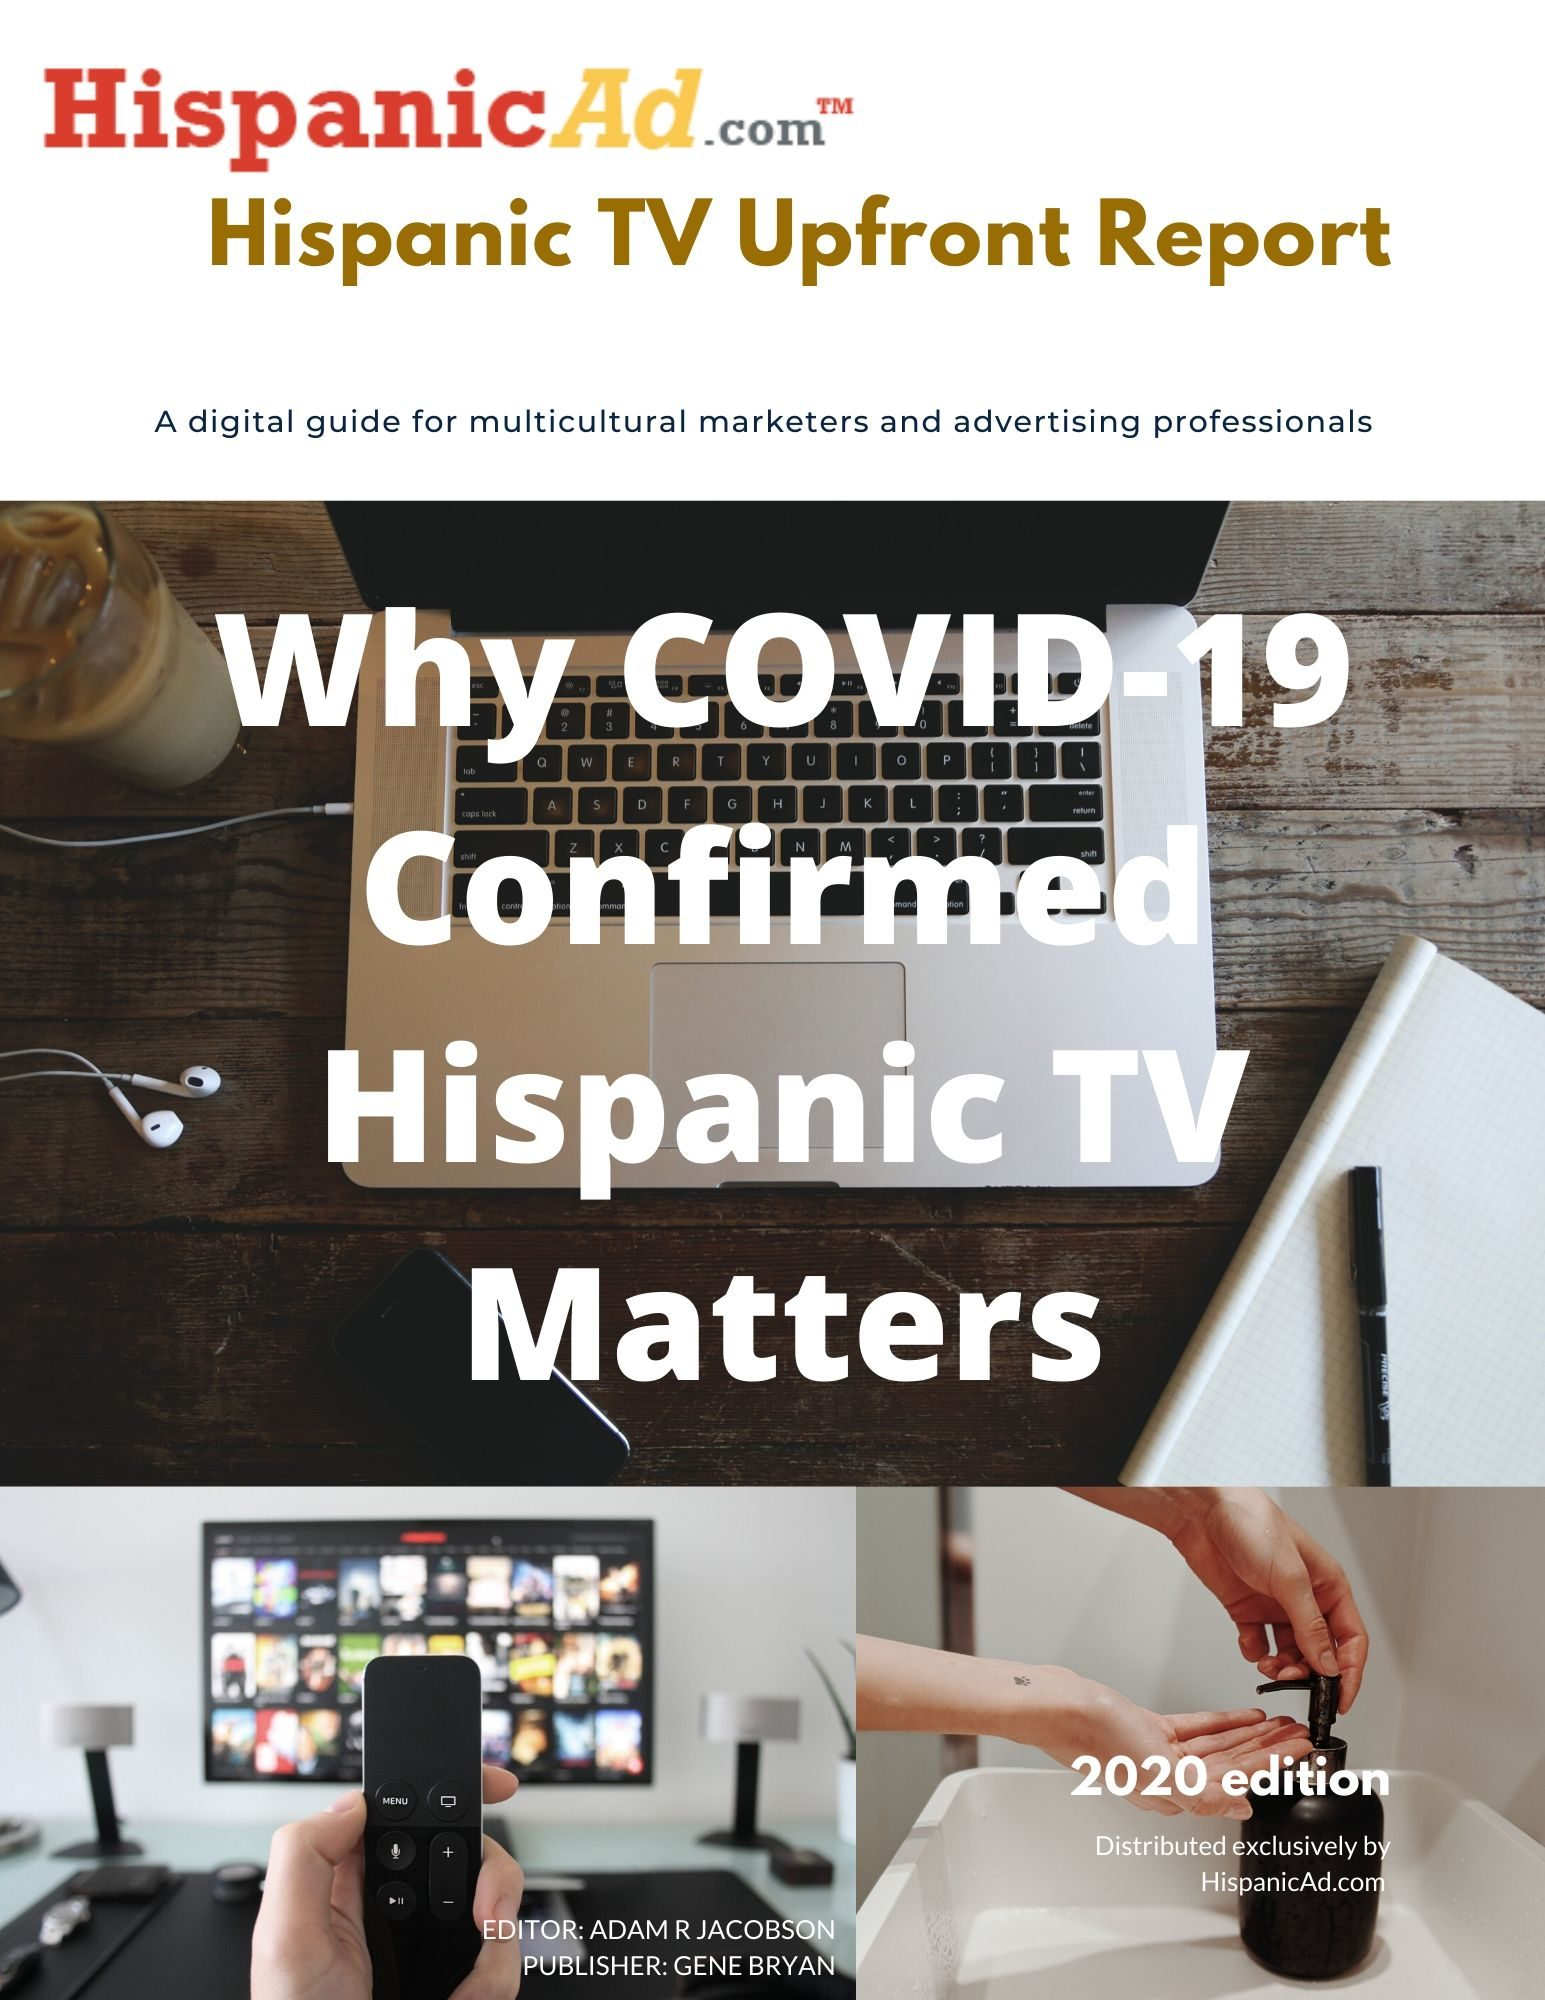 The 2020HISPANIC TV UPFRONT REPORTis now available!